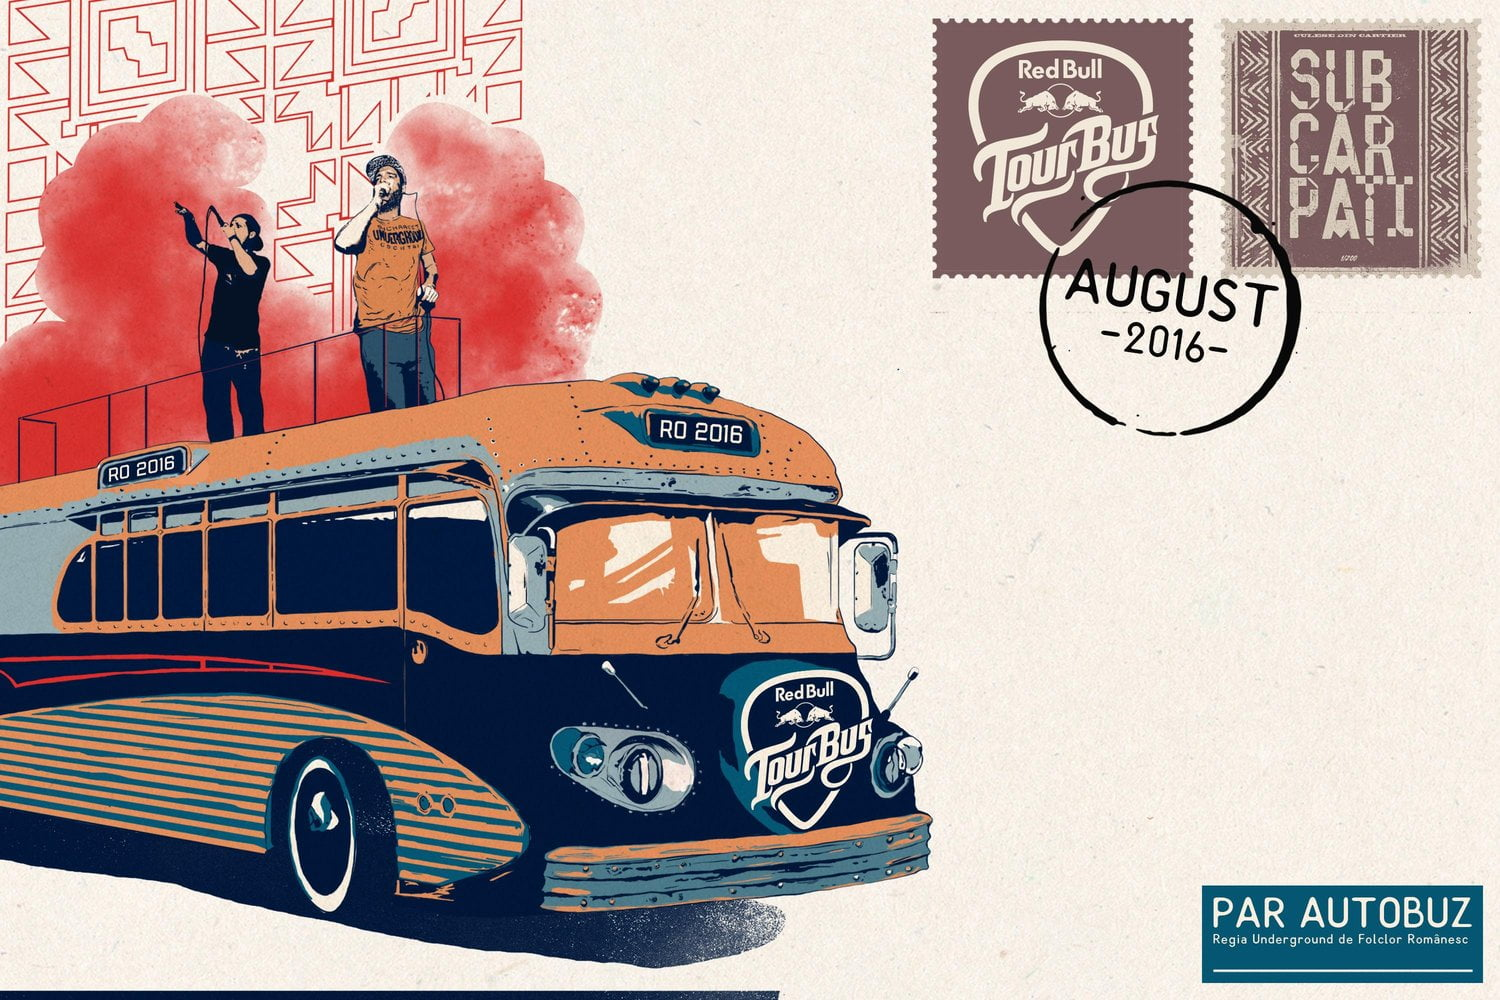 red-bull-tour-bus-turneu-subcarpati-in-subcarpati